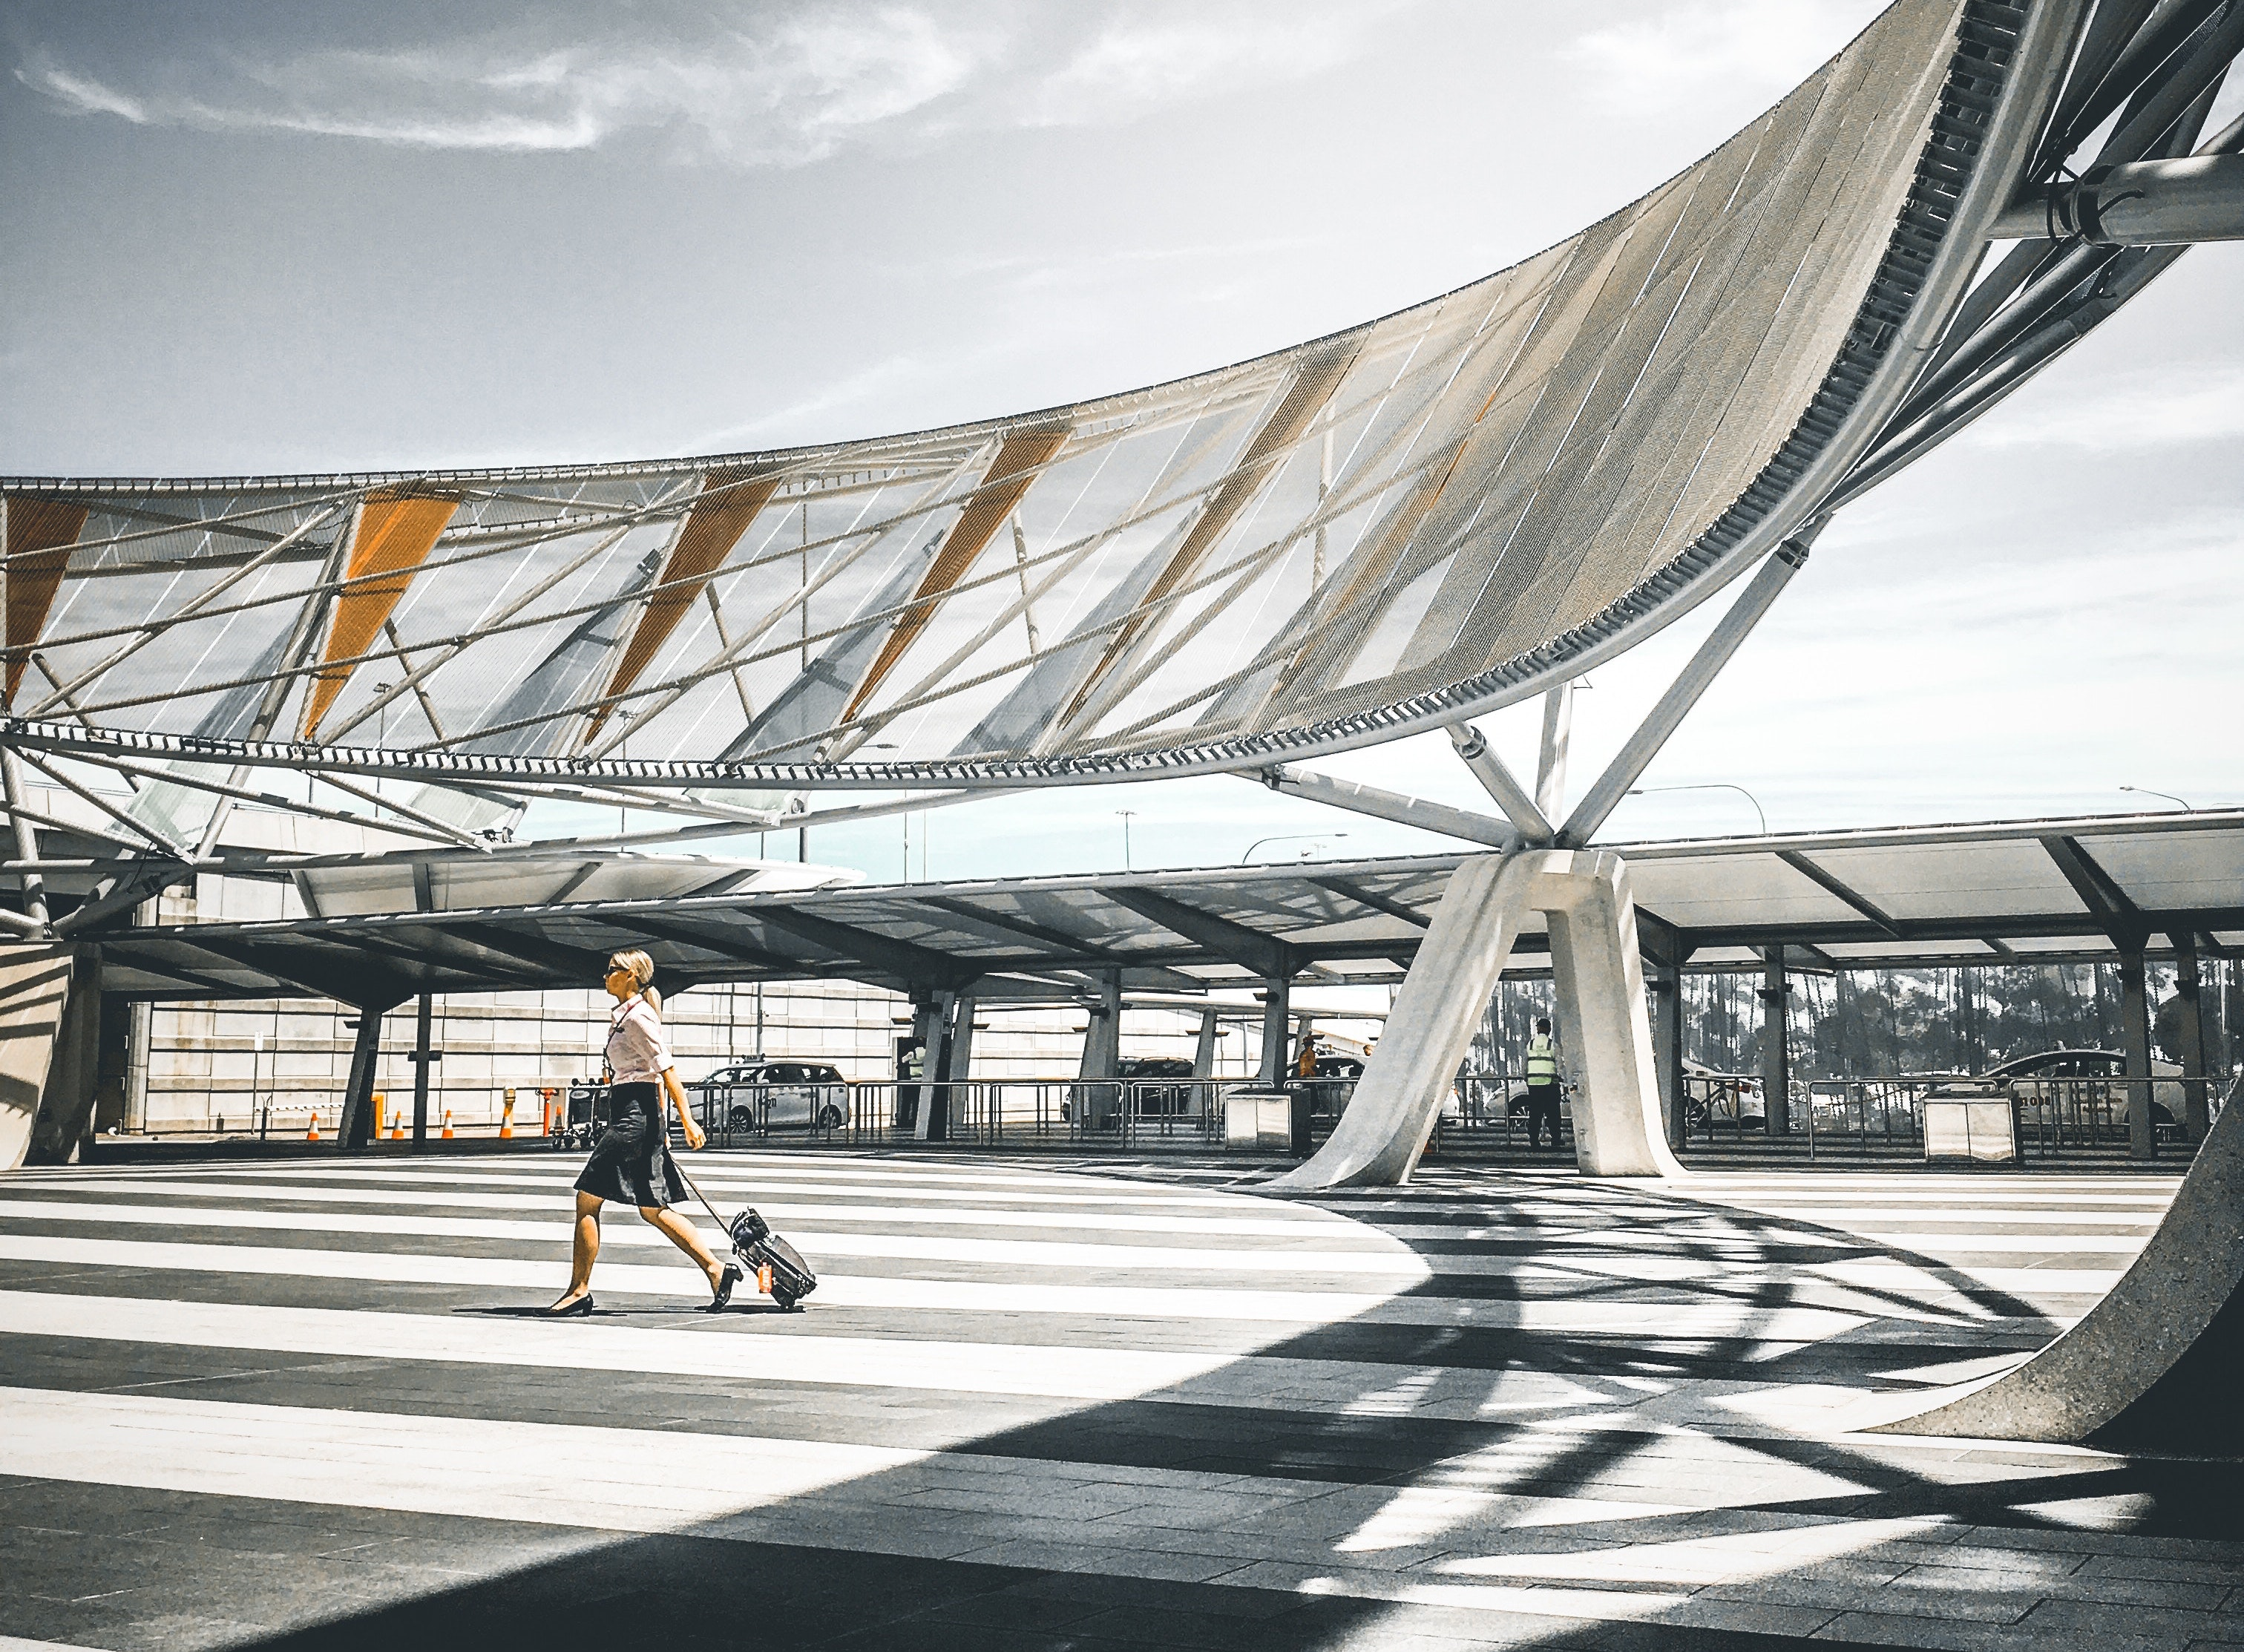 6 Airports Where a Layover Can Become a Mini-Vacation